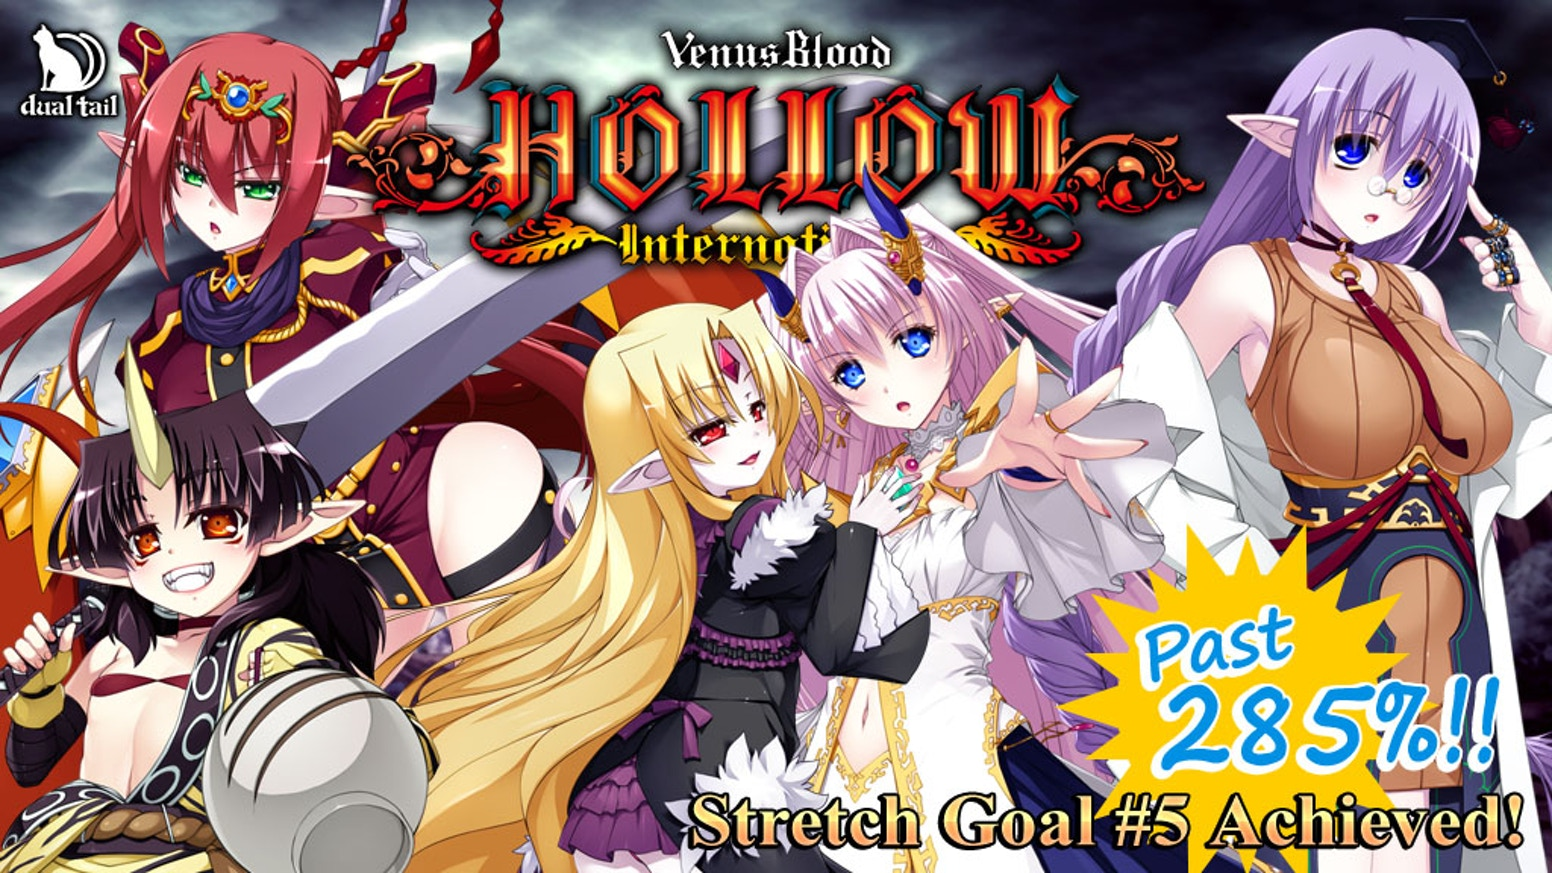 """We wish to bring our SRPG Visual Novel """"VenusBlood HOLLOW"""" overseas with this English Localization, and we hope you will support us!"""